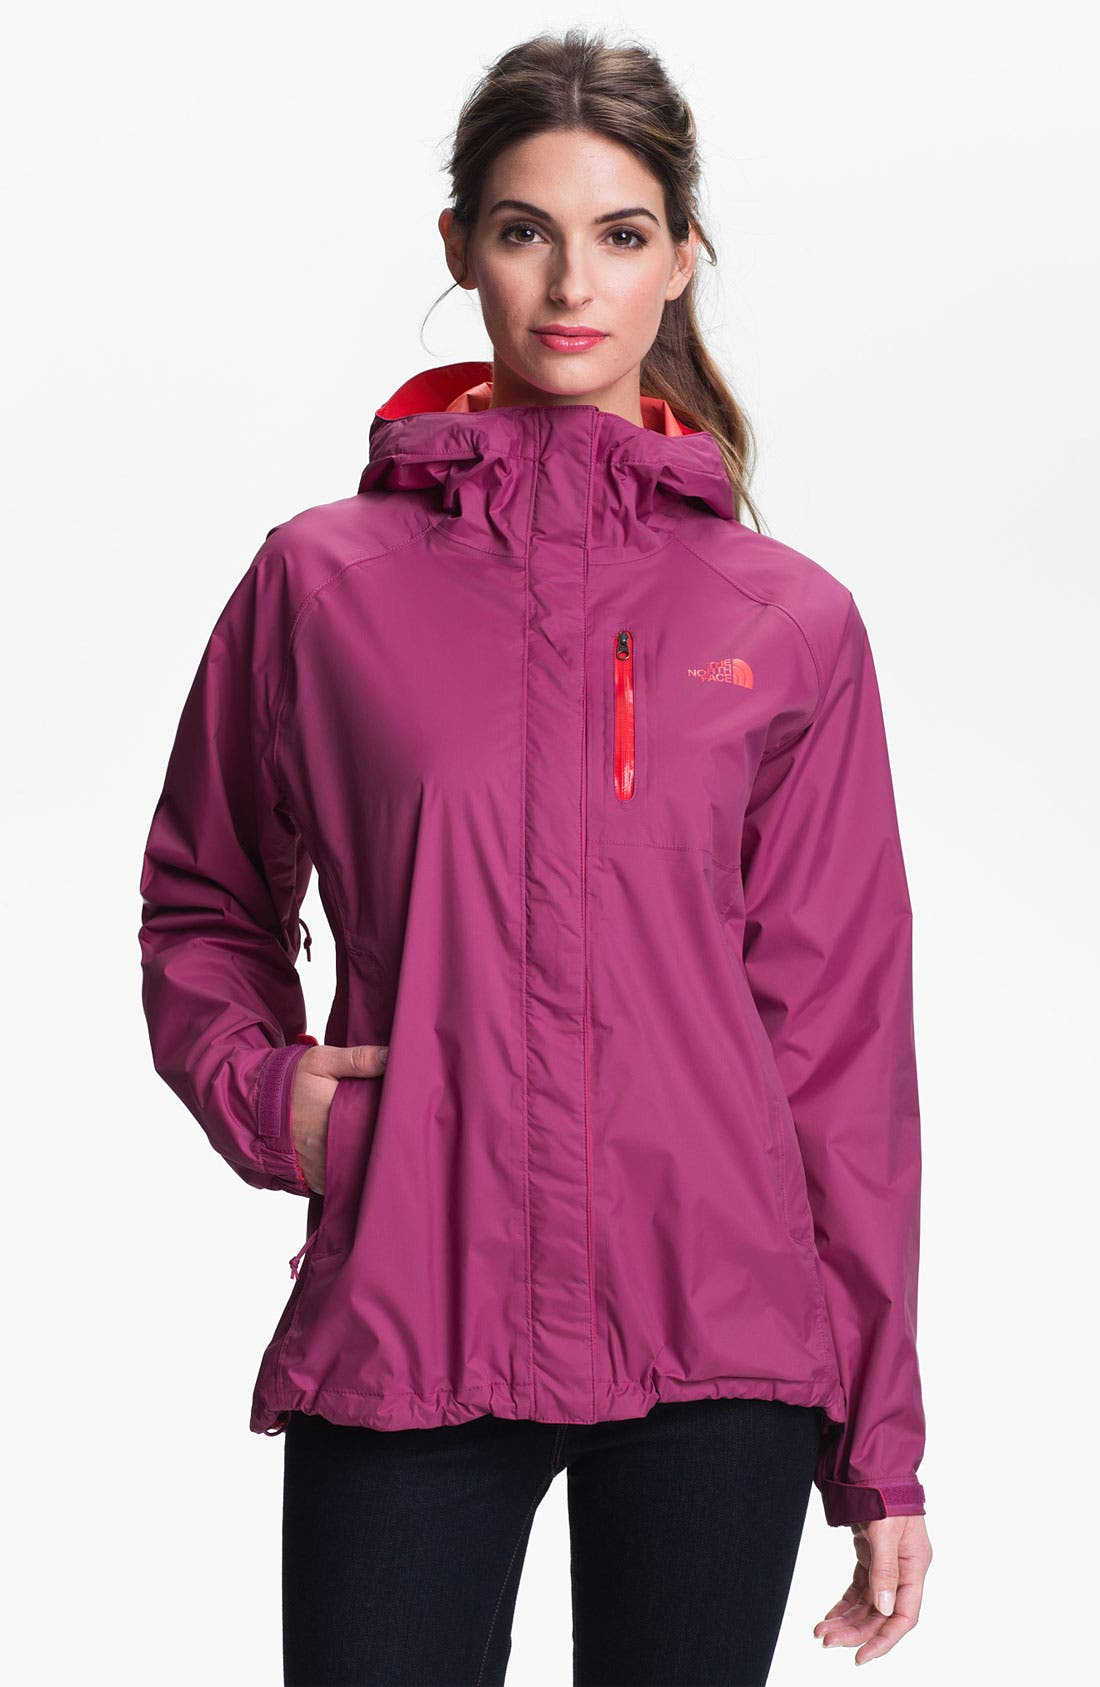 Alternate Image 1 Selected - The North Face 'Super Venture' Rain Jacket